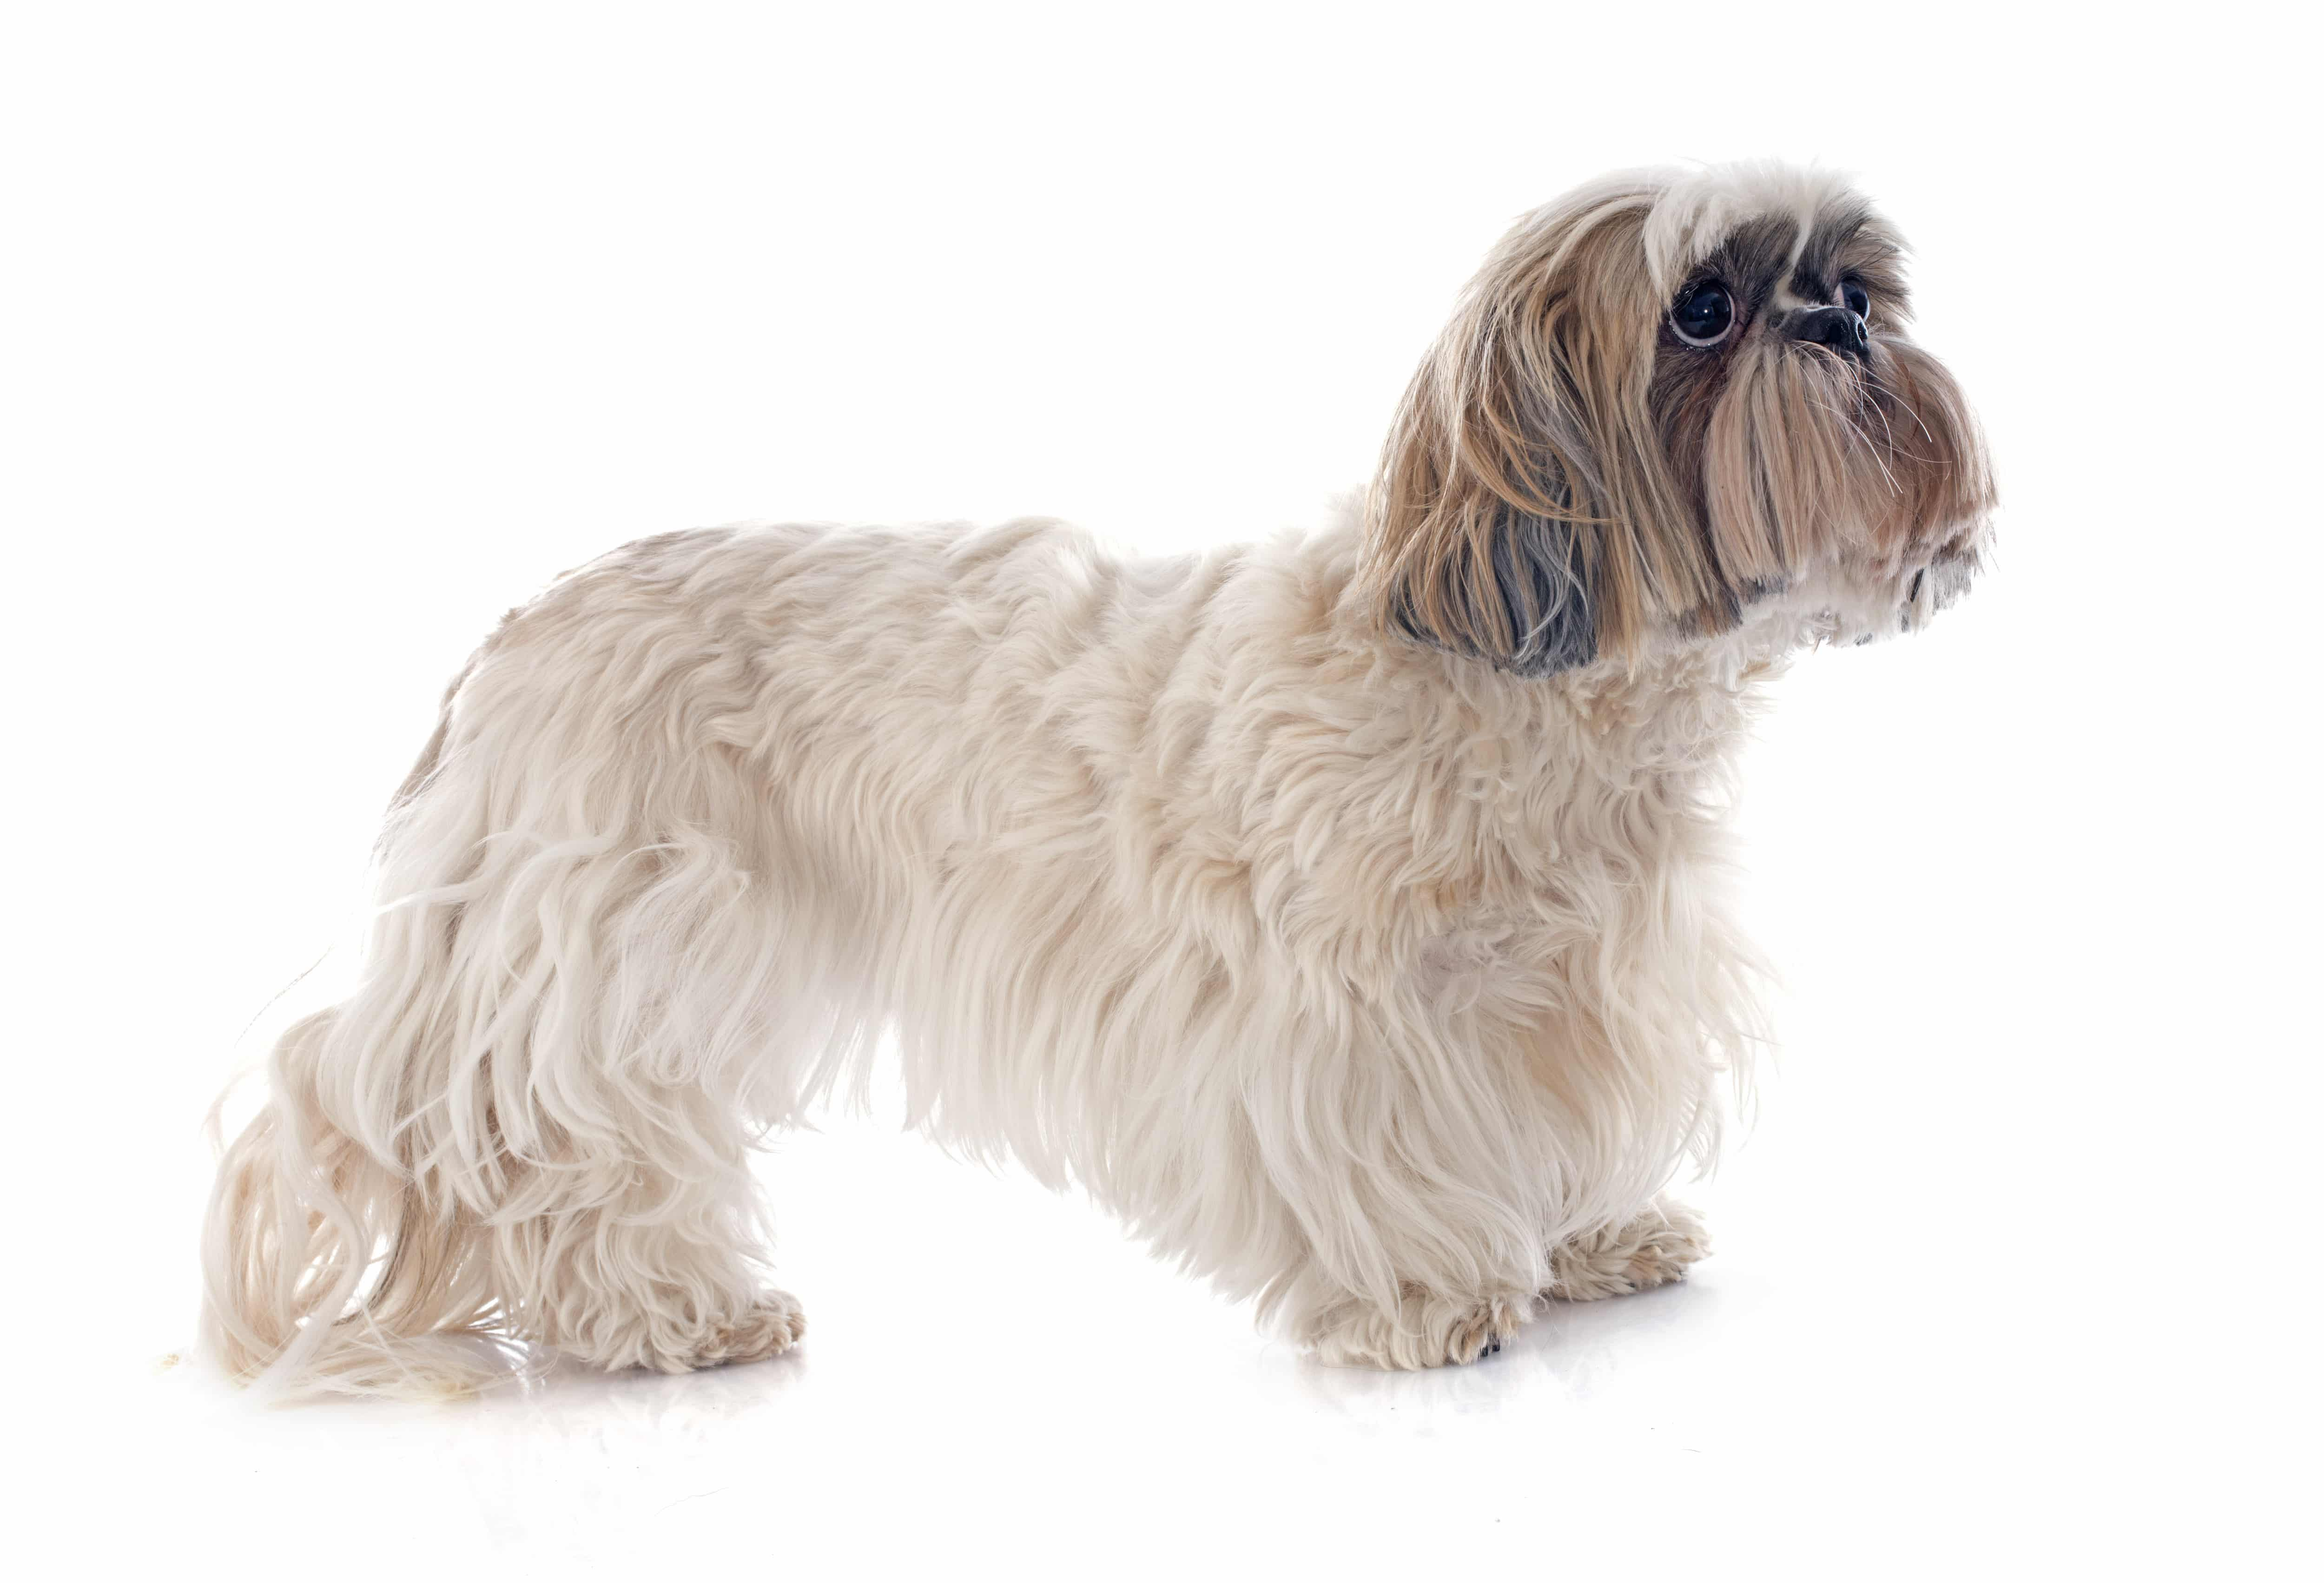 shih-tzu dog price in india